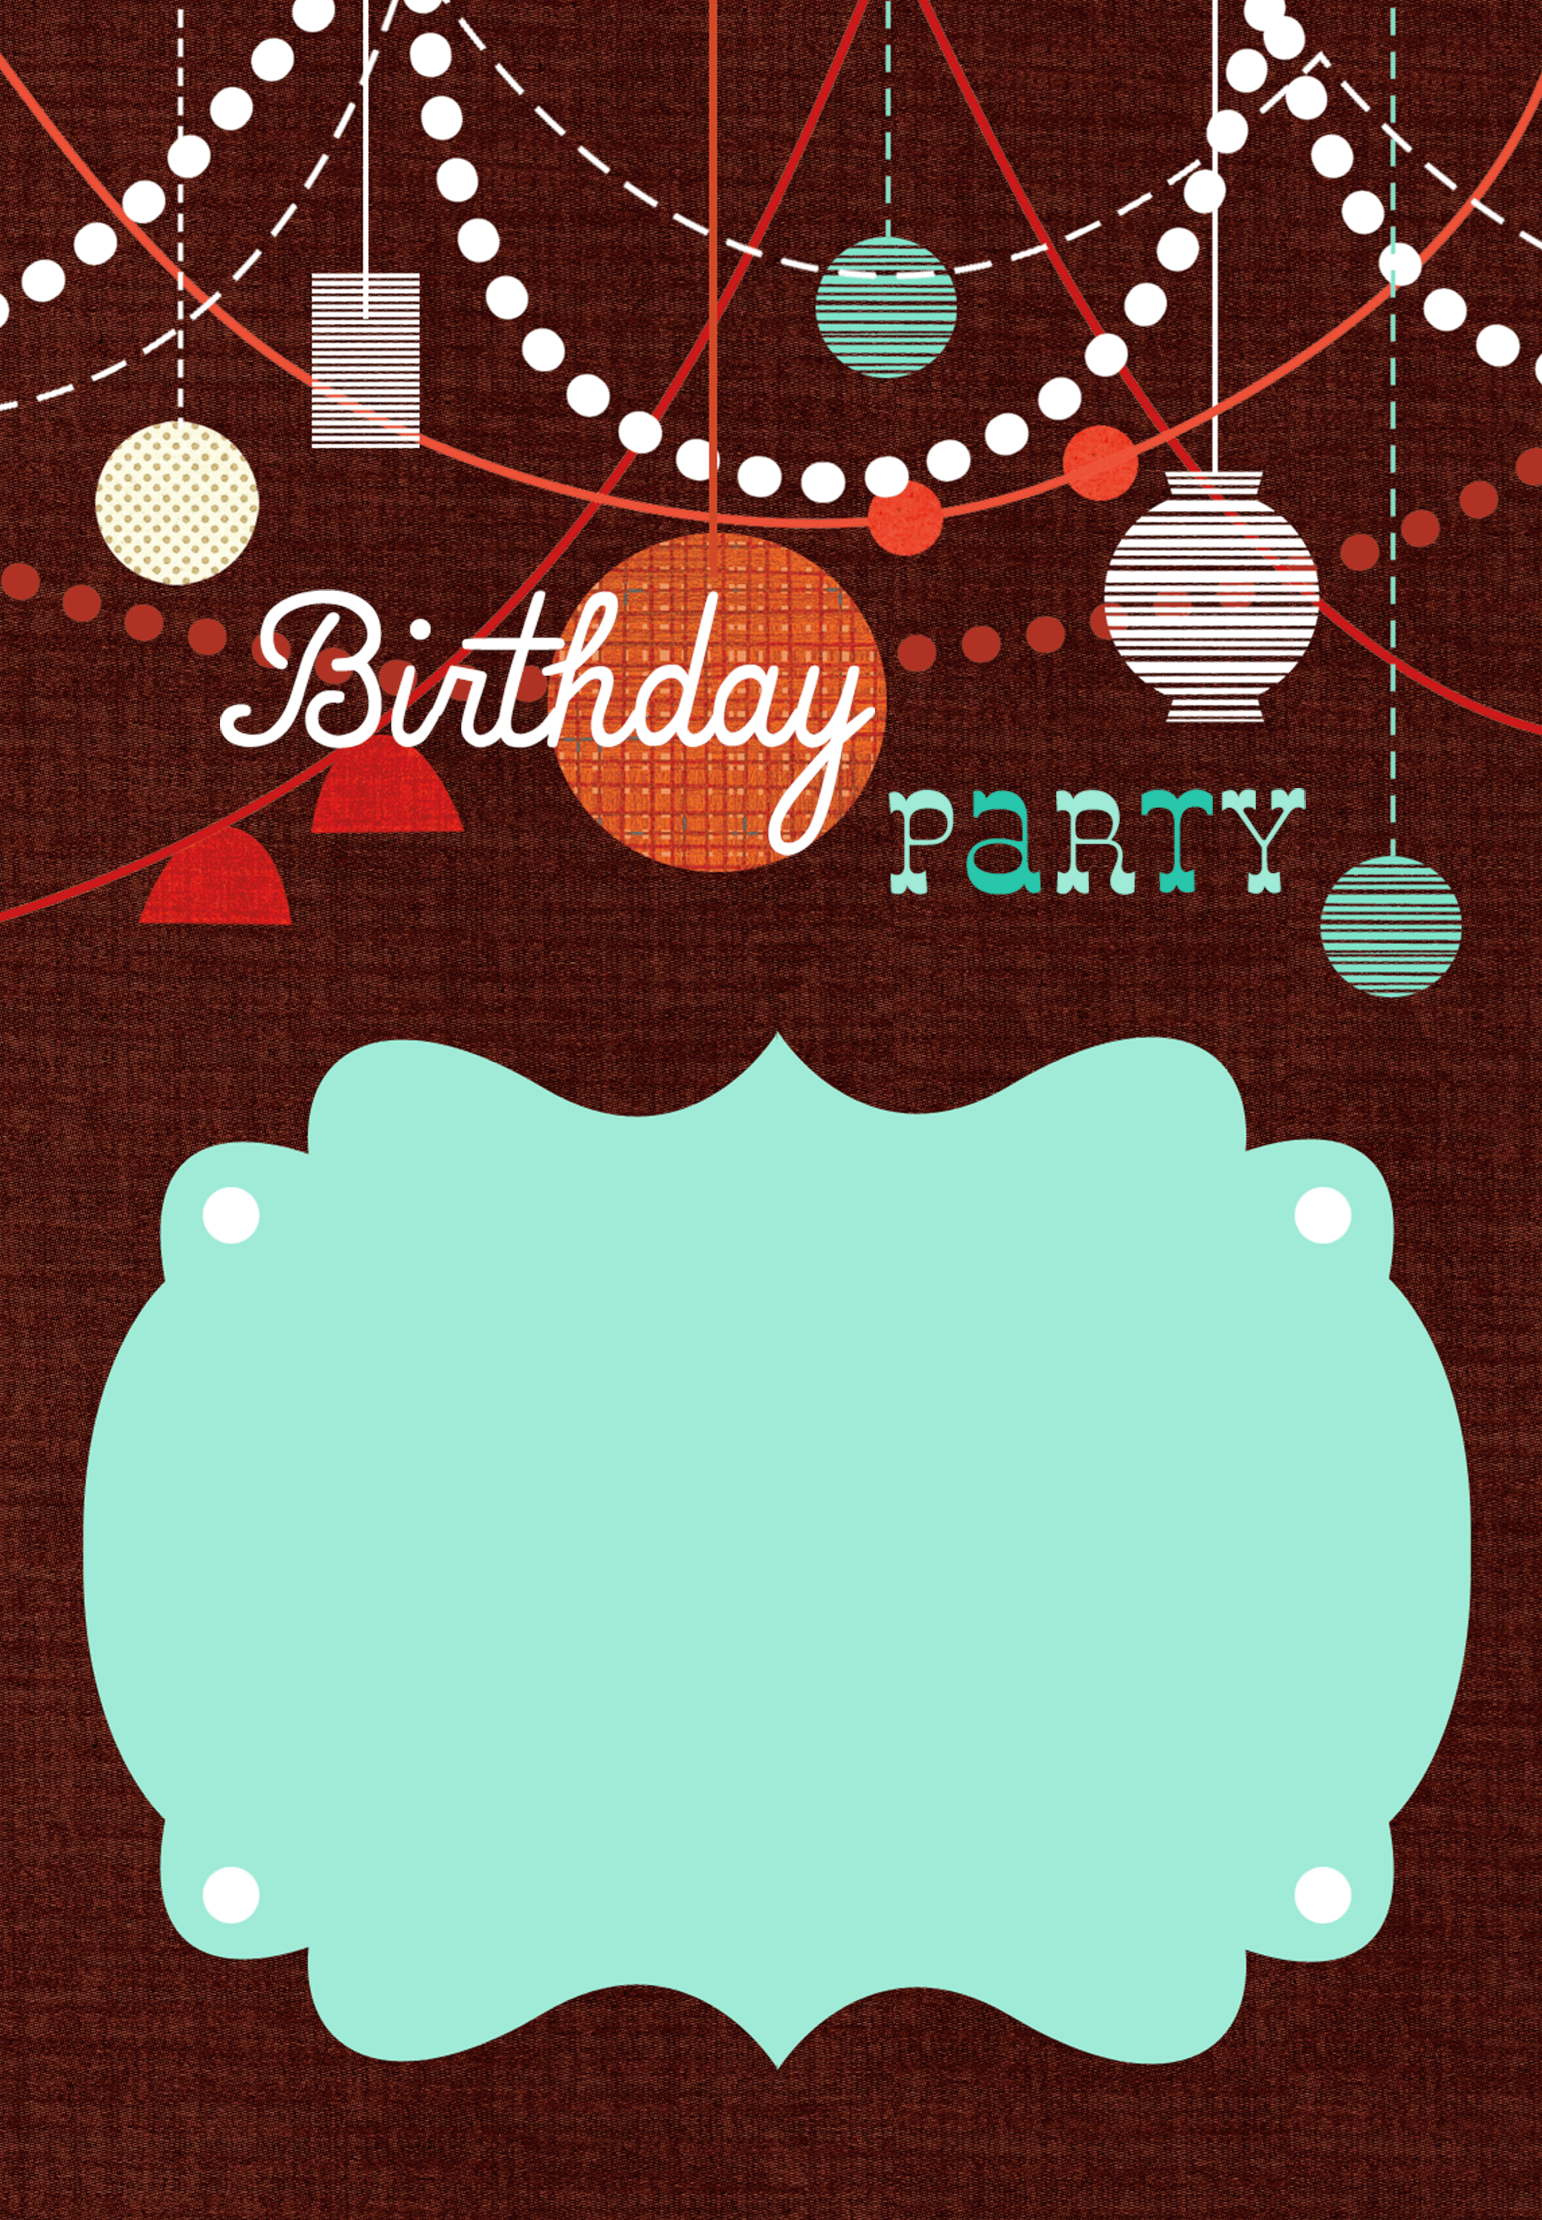 Birthday Decorations Free Printable Birthday Invitation Template - Retro birthday invitation template